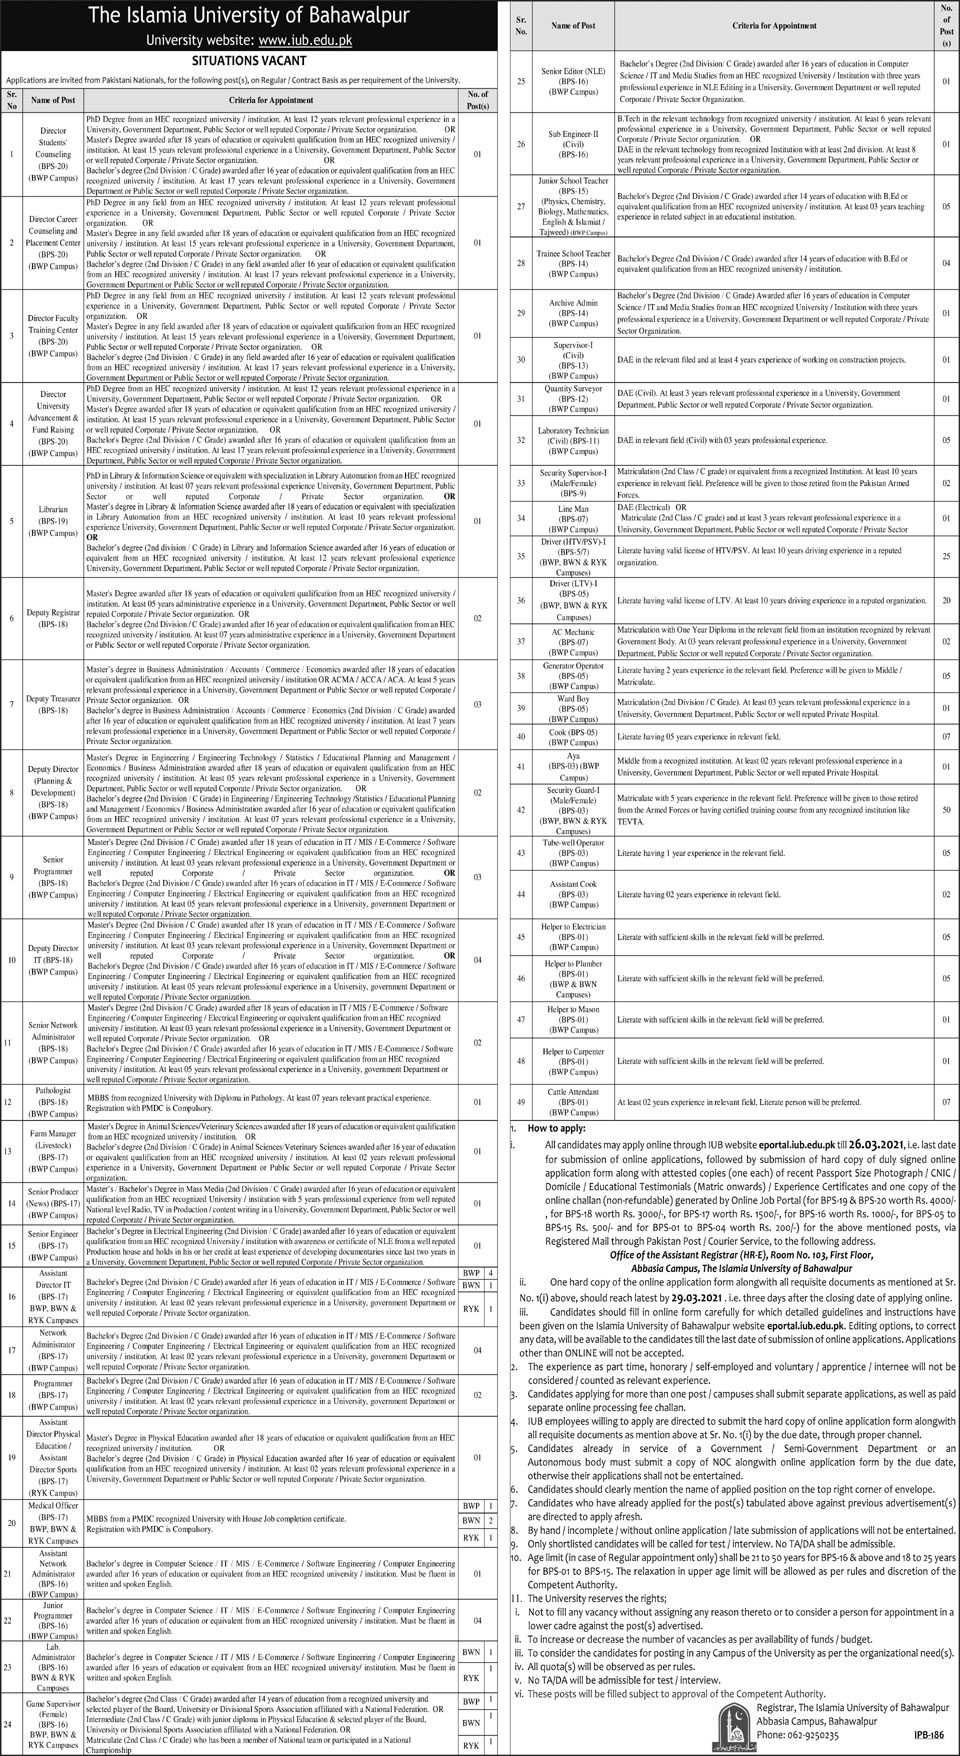 The Islamia University of Bahawalpur IUB Jobs 2021